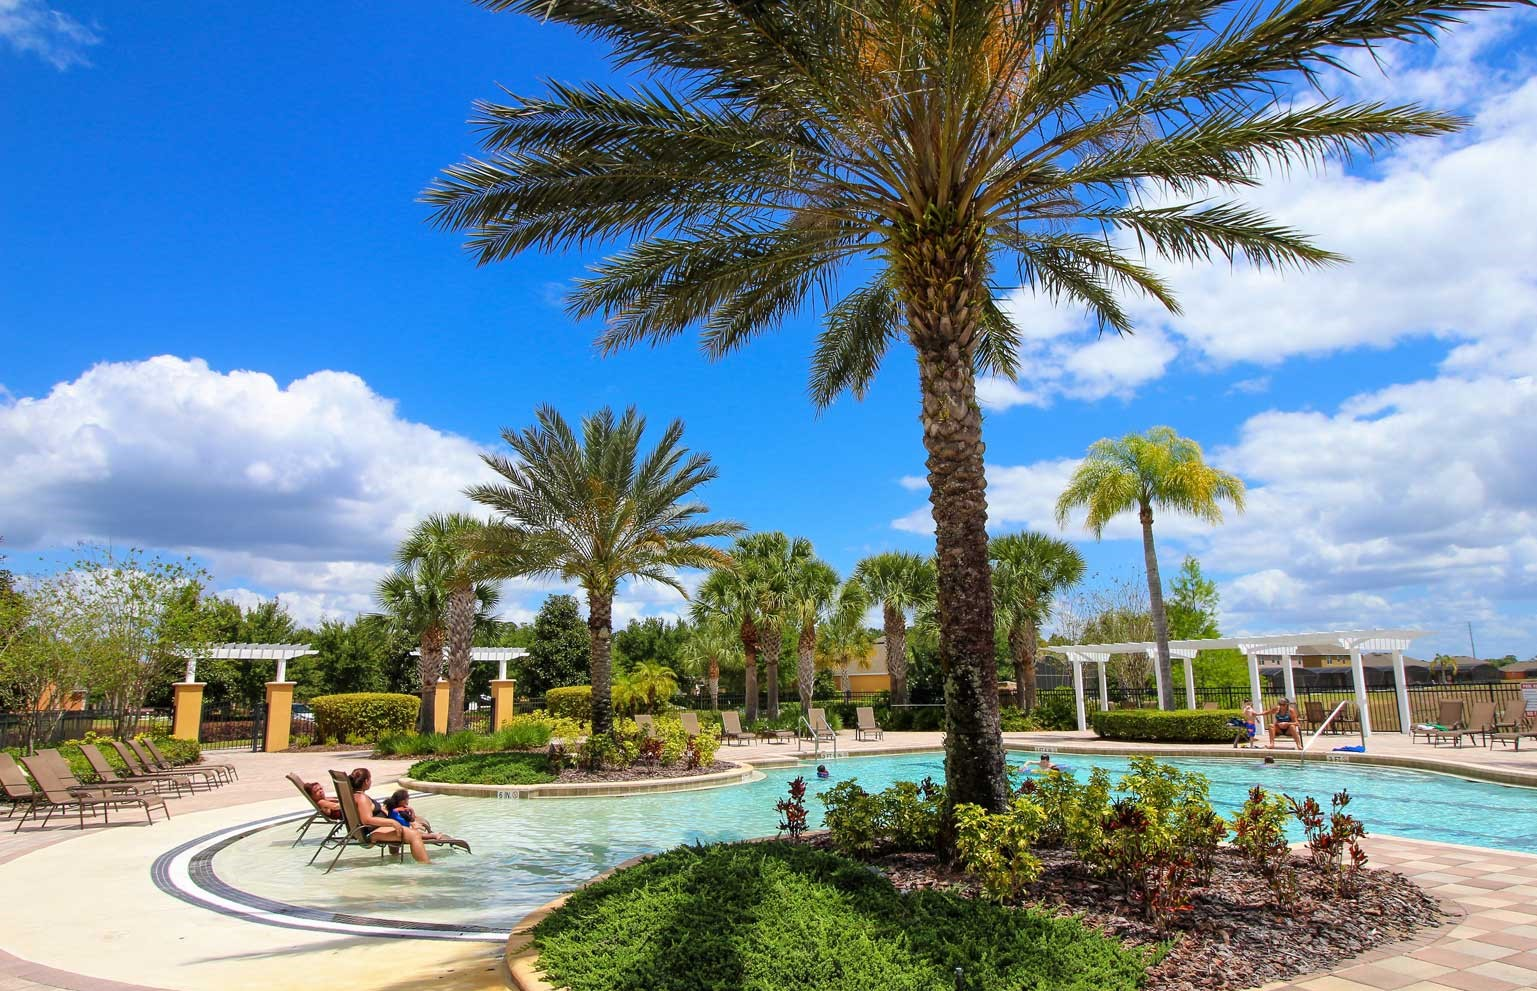 Watersong Resort/DR5929-145247